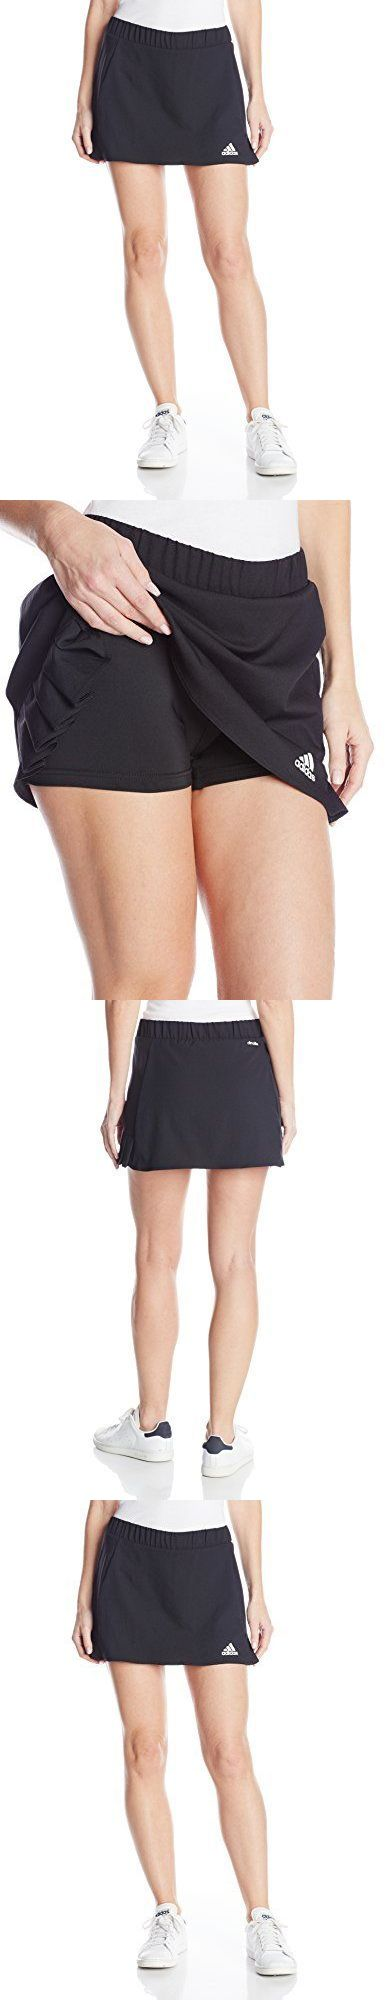 Other Racquet Sport Clothing 70903: Adidas Women S Tennis Skort Black Small Womens Tennis Apparel, New -> BUY IT NOW ONLY: $132 on eBay!